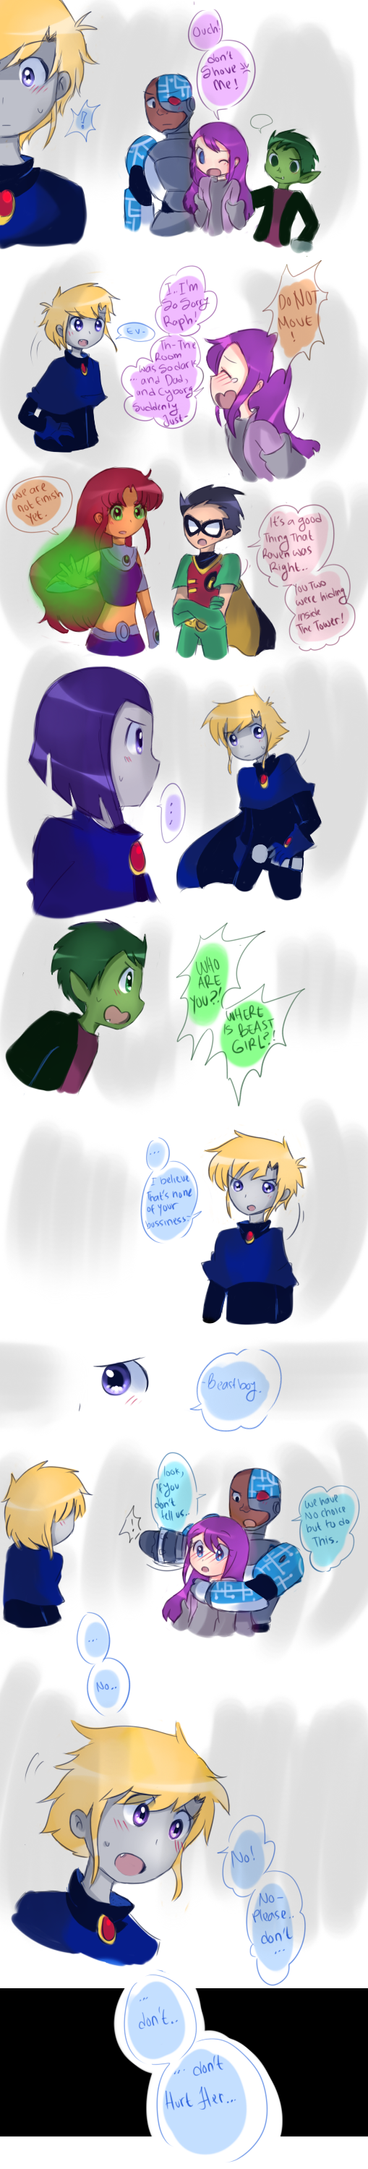 .: Sakutia Disease : Page 18 :. by FnFiNdOART